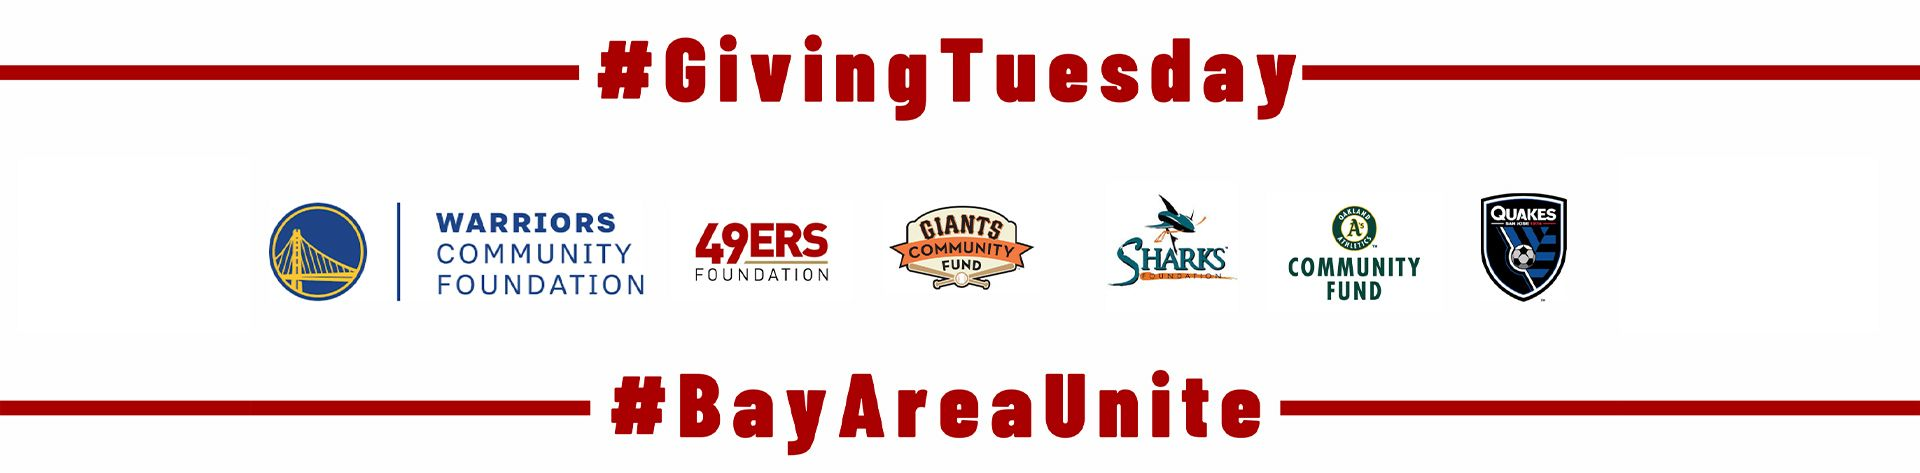 BayAreaUnite-GivingTuesday-email